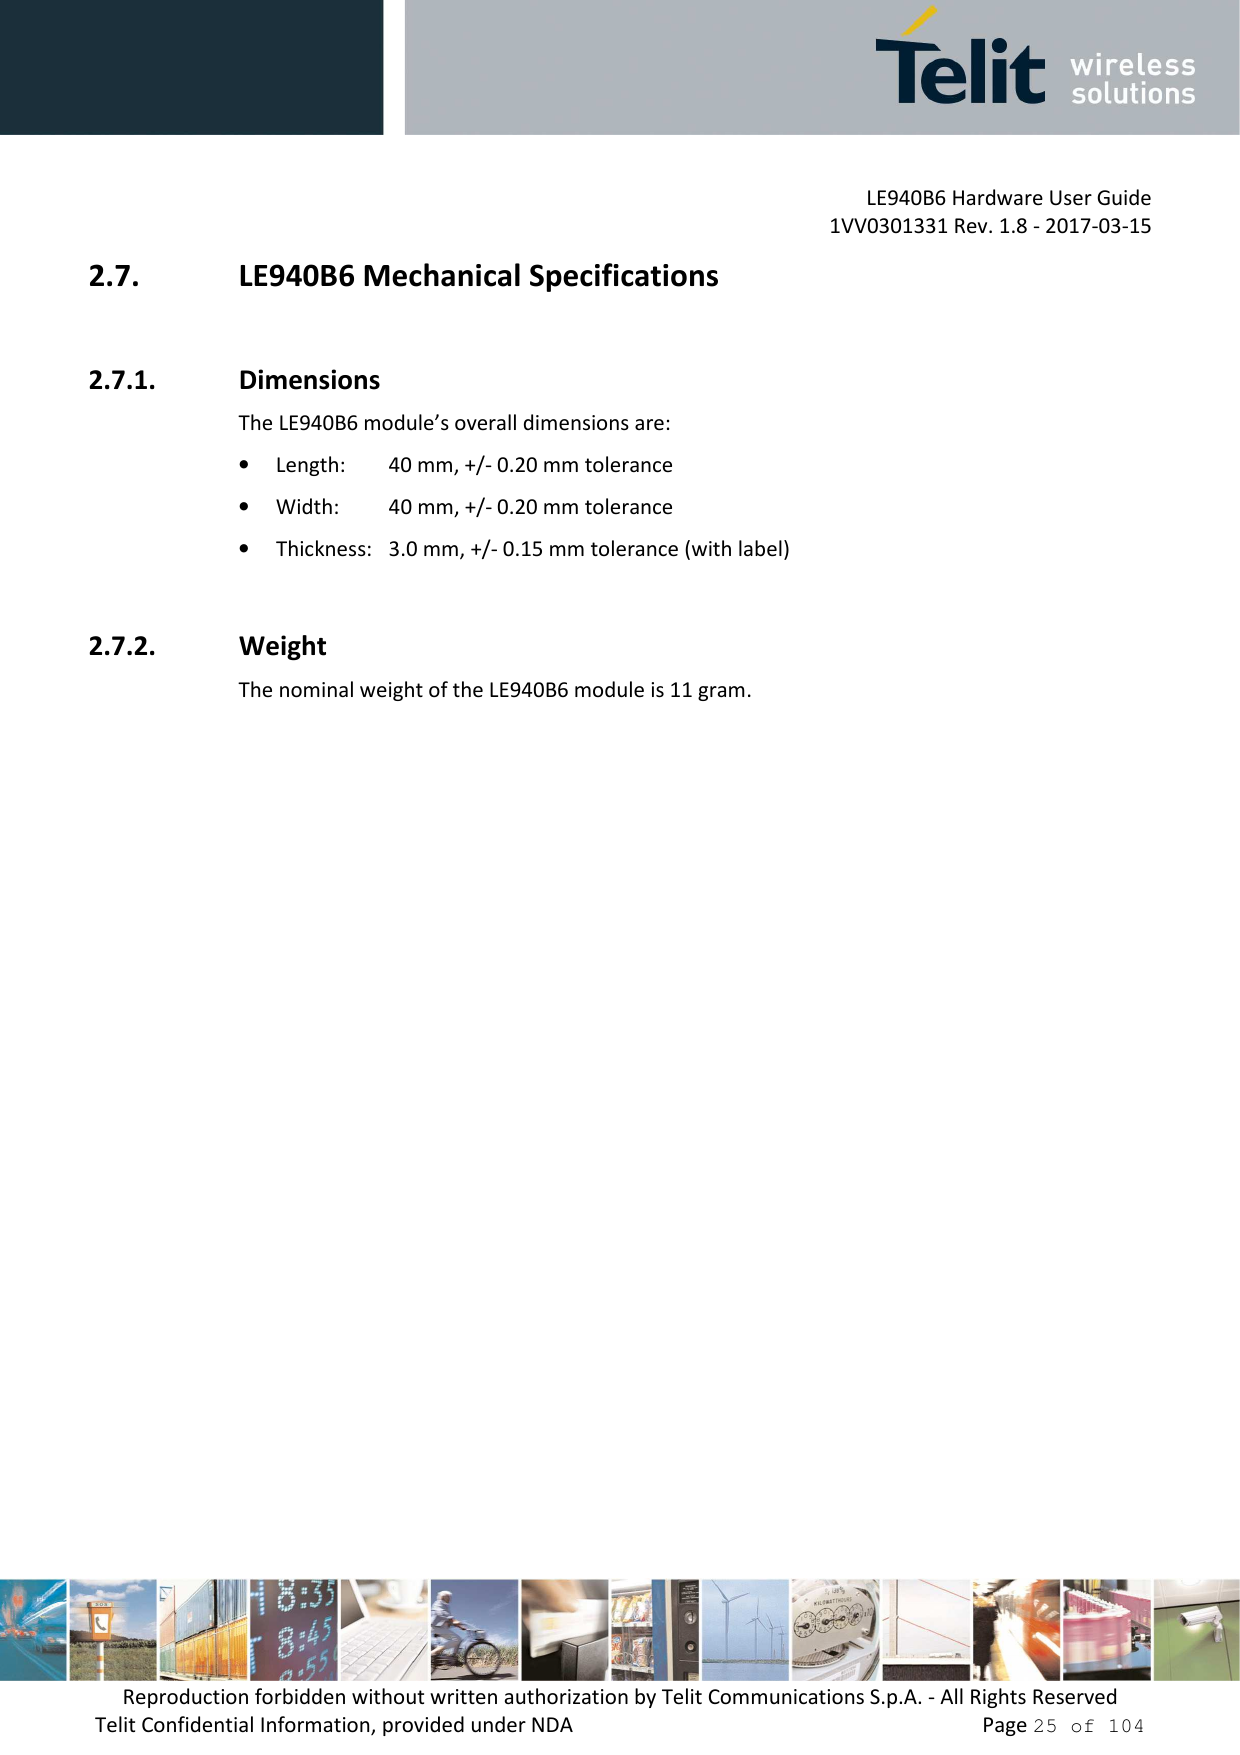 LE940B6 Hardware User Guide     1VV0301331 Rev. 1.8 - 2017-03-15 Reproduction forbidden without written authorization by Telit Communications S.p.A. - All Rights Reserved Telit Confidential Information, provided under NDA                 Page 25 of 104 2.7. LE940B6 Mechanical Specifications  2.7.1. Dimensions The LE940B6 module's overall dimensions are:  • Length:   40 mm, +/- 0.20 mm tolerance • Width:   40 mm, +/- 0.20 mm tolerance • Thickness:   3.0 mm, +/- 0.15 mm tolerance (with label)  2.7.2. Weight The nominal weight of the LE940B6 module is 11 gram.